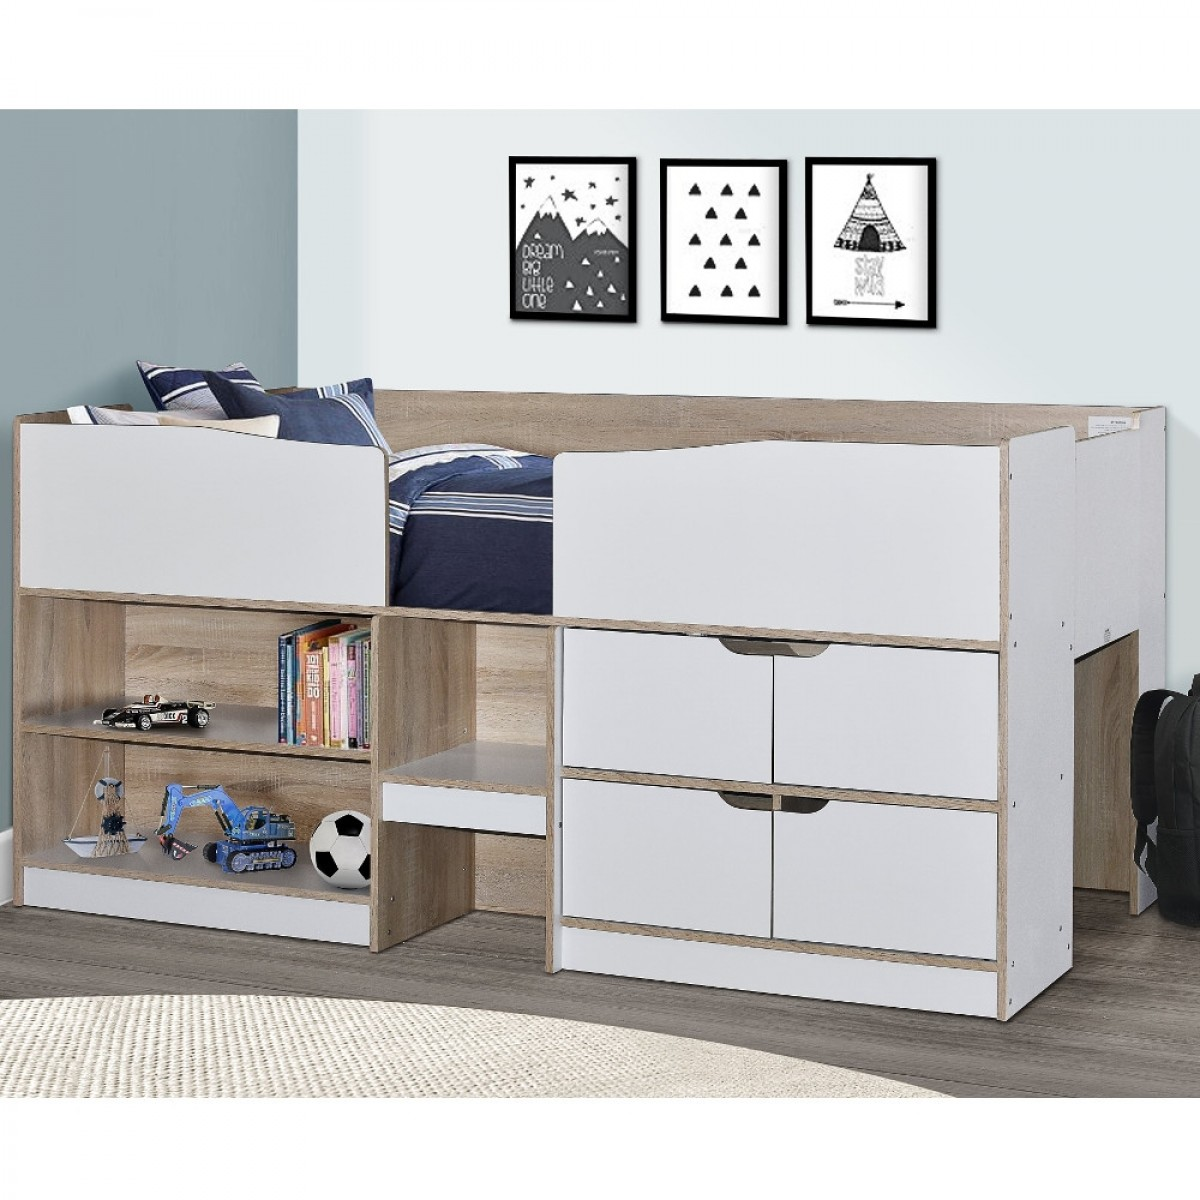 Merlin White and Oak Wooden Mid Sleeper Cabin Storage Bed